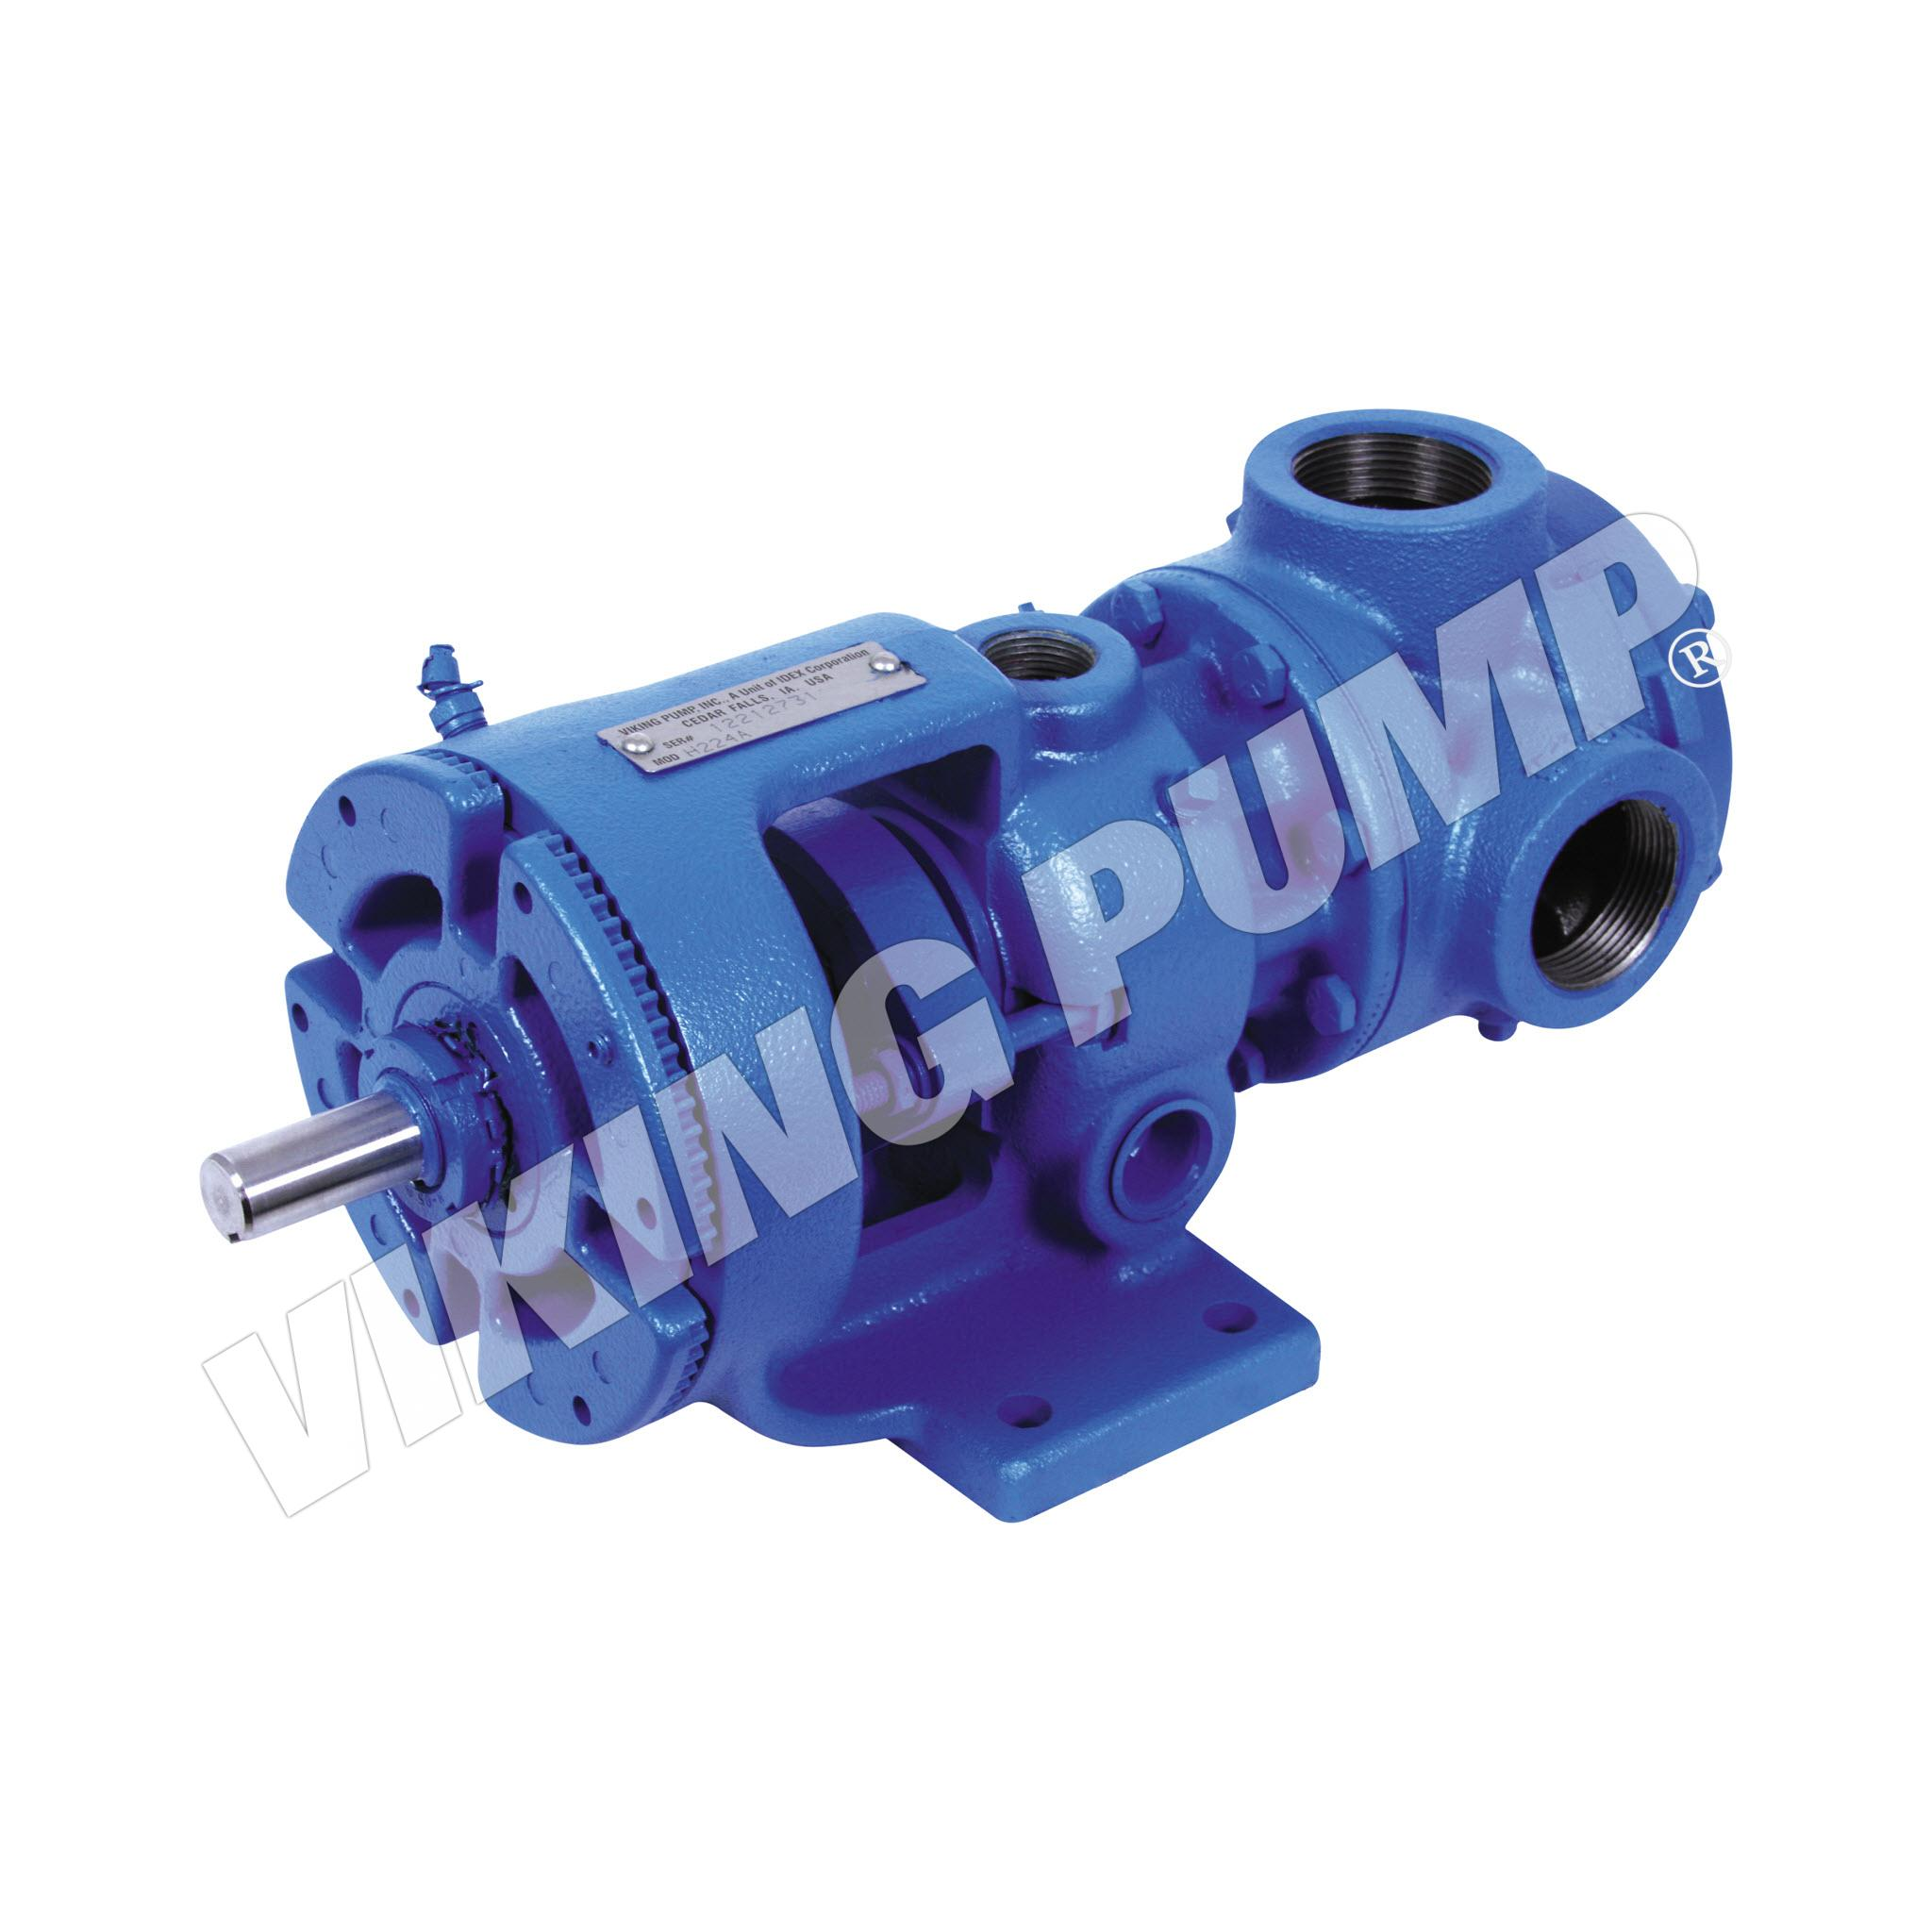 Model H226A, Foot Mounted, Packed Gland, less Relief Valve Pump